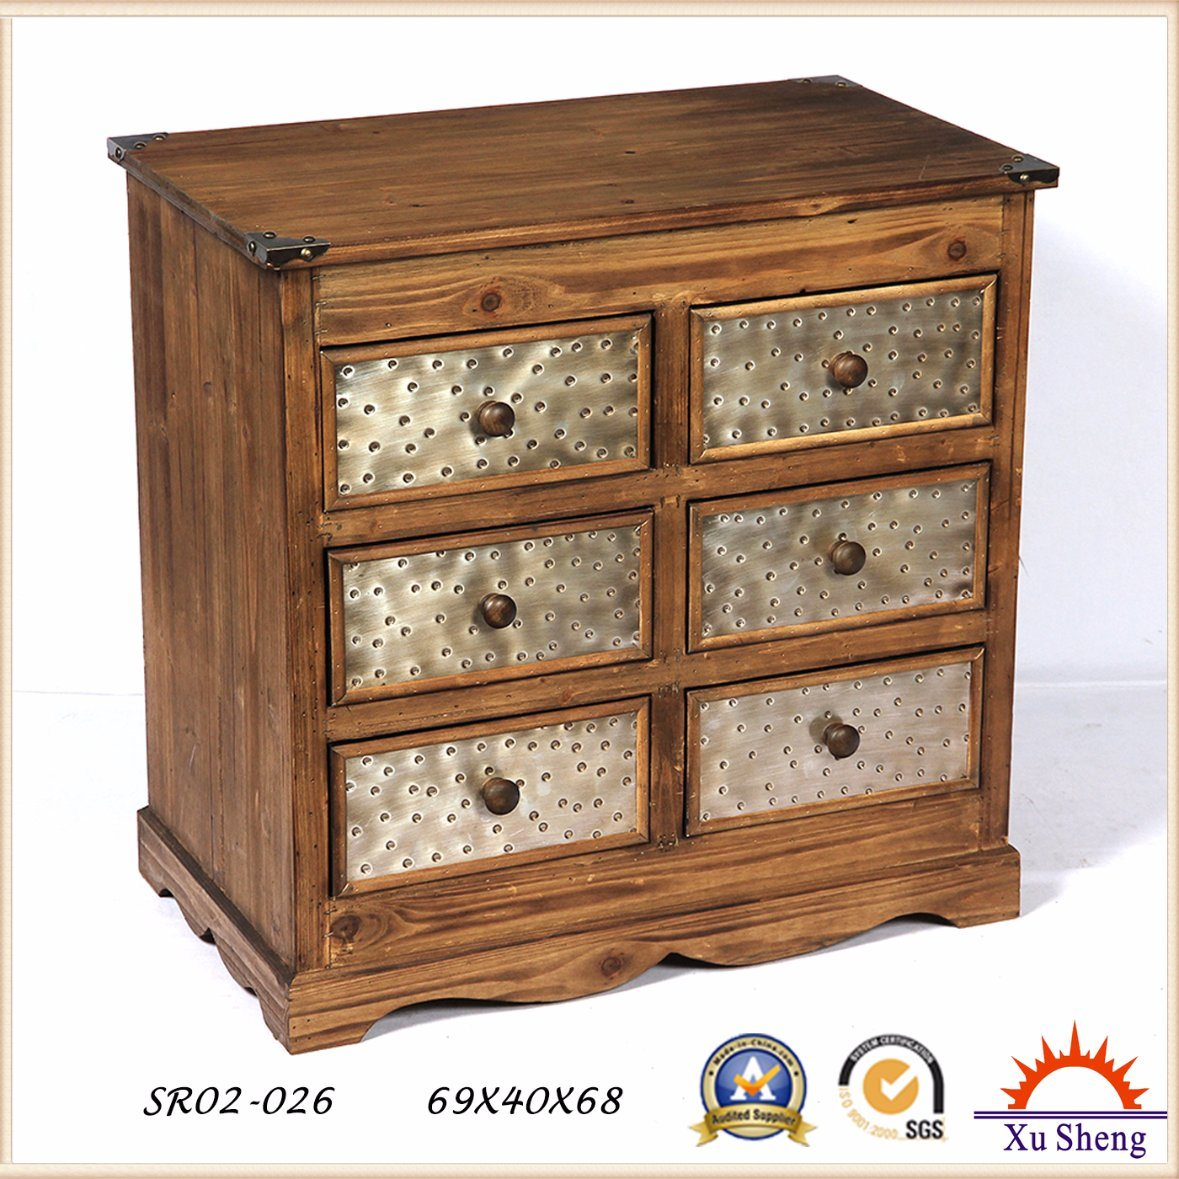 Wooden Cabinet Shabby Chic Furniture Multi-Drawer